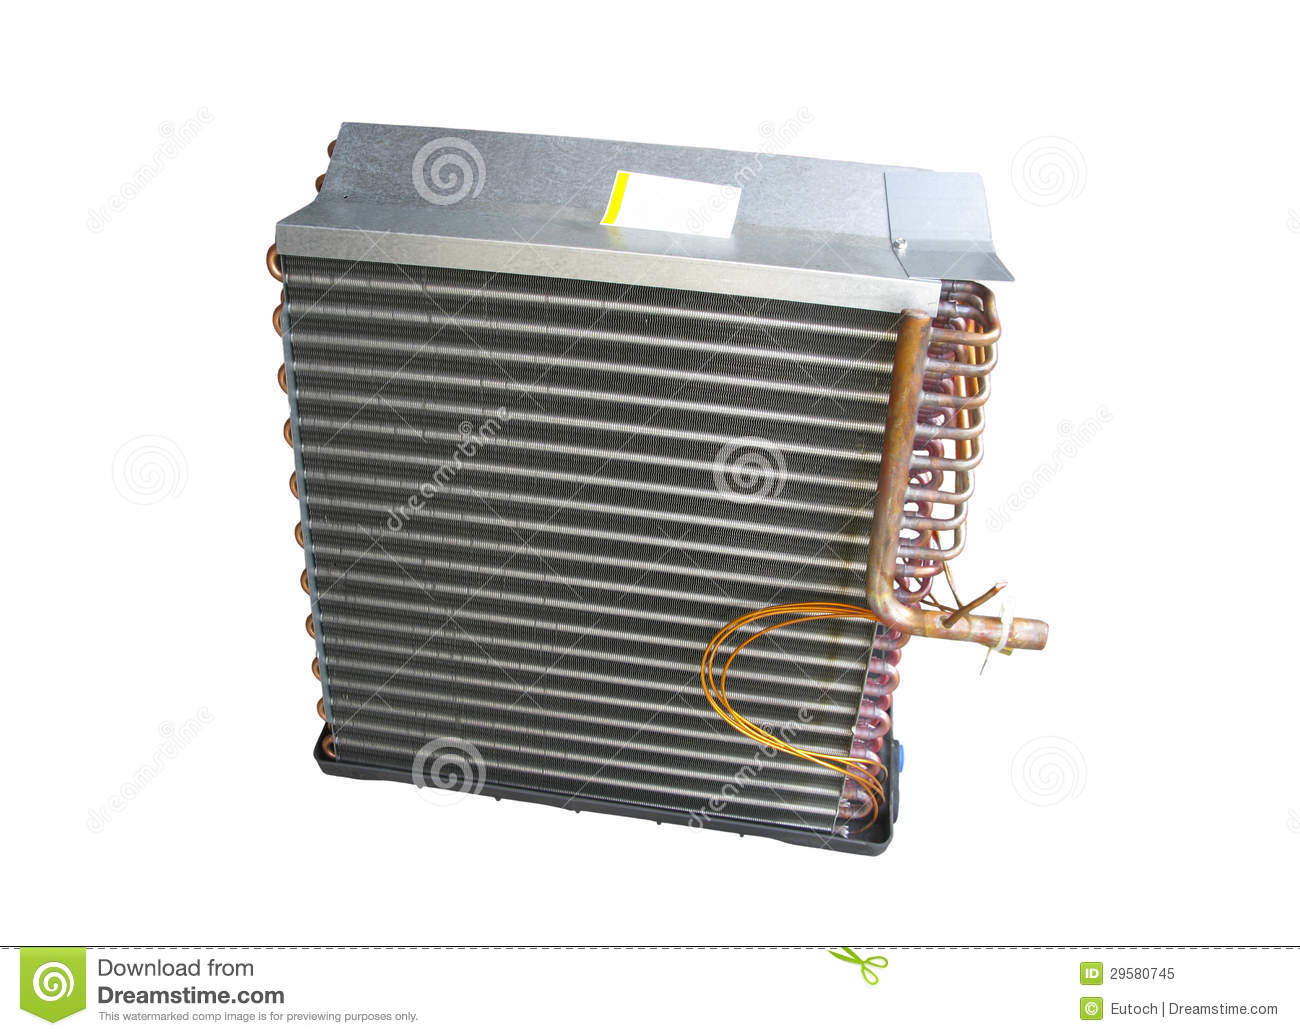 how to change evaporator coil